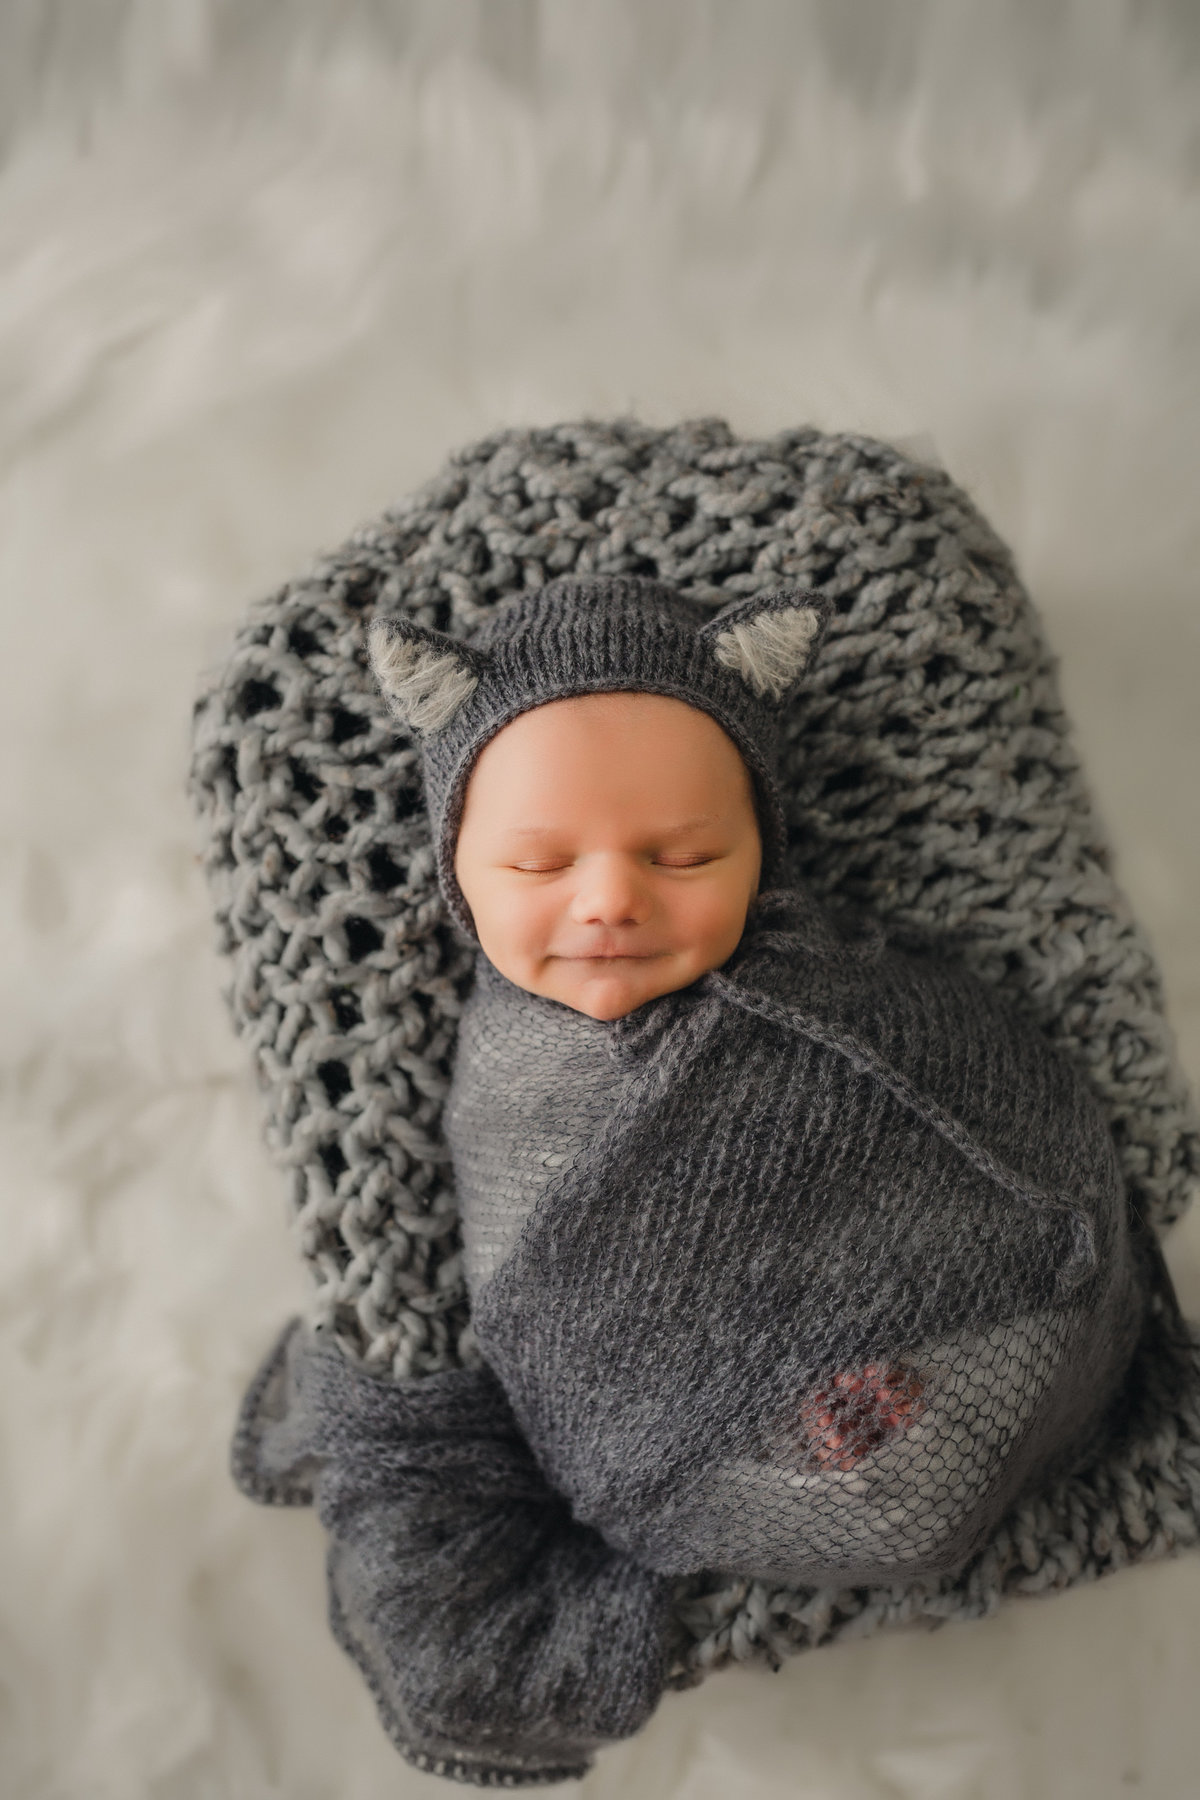 Green Bay Newborn Photographer, Appleton Newborn Photographer, Green Bay Newborn Photography, Appleton Newborn Photography, Newborn Photography, Newborn Photographer, Wisconsin Newborn Photography, Wisconsin Newborn Photographer